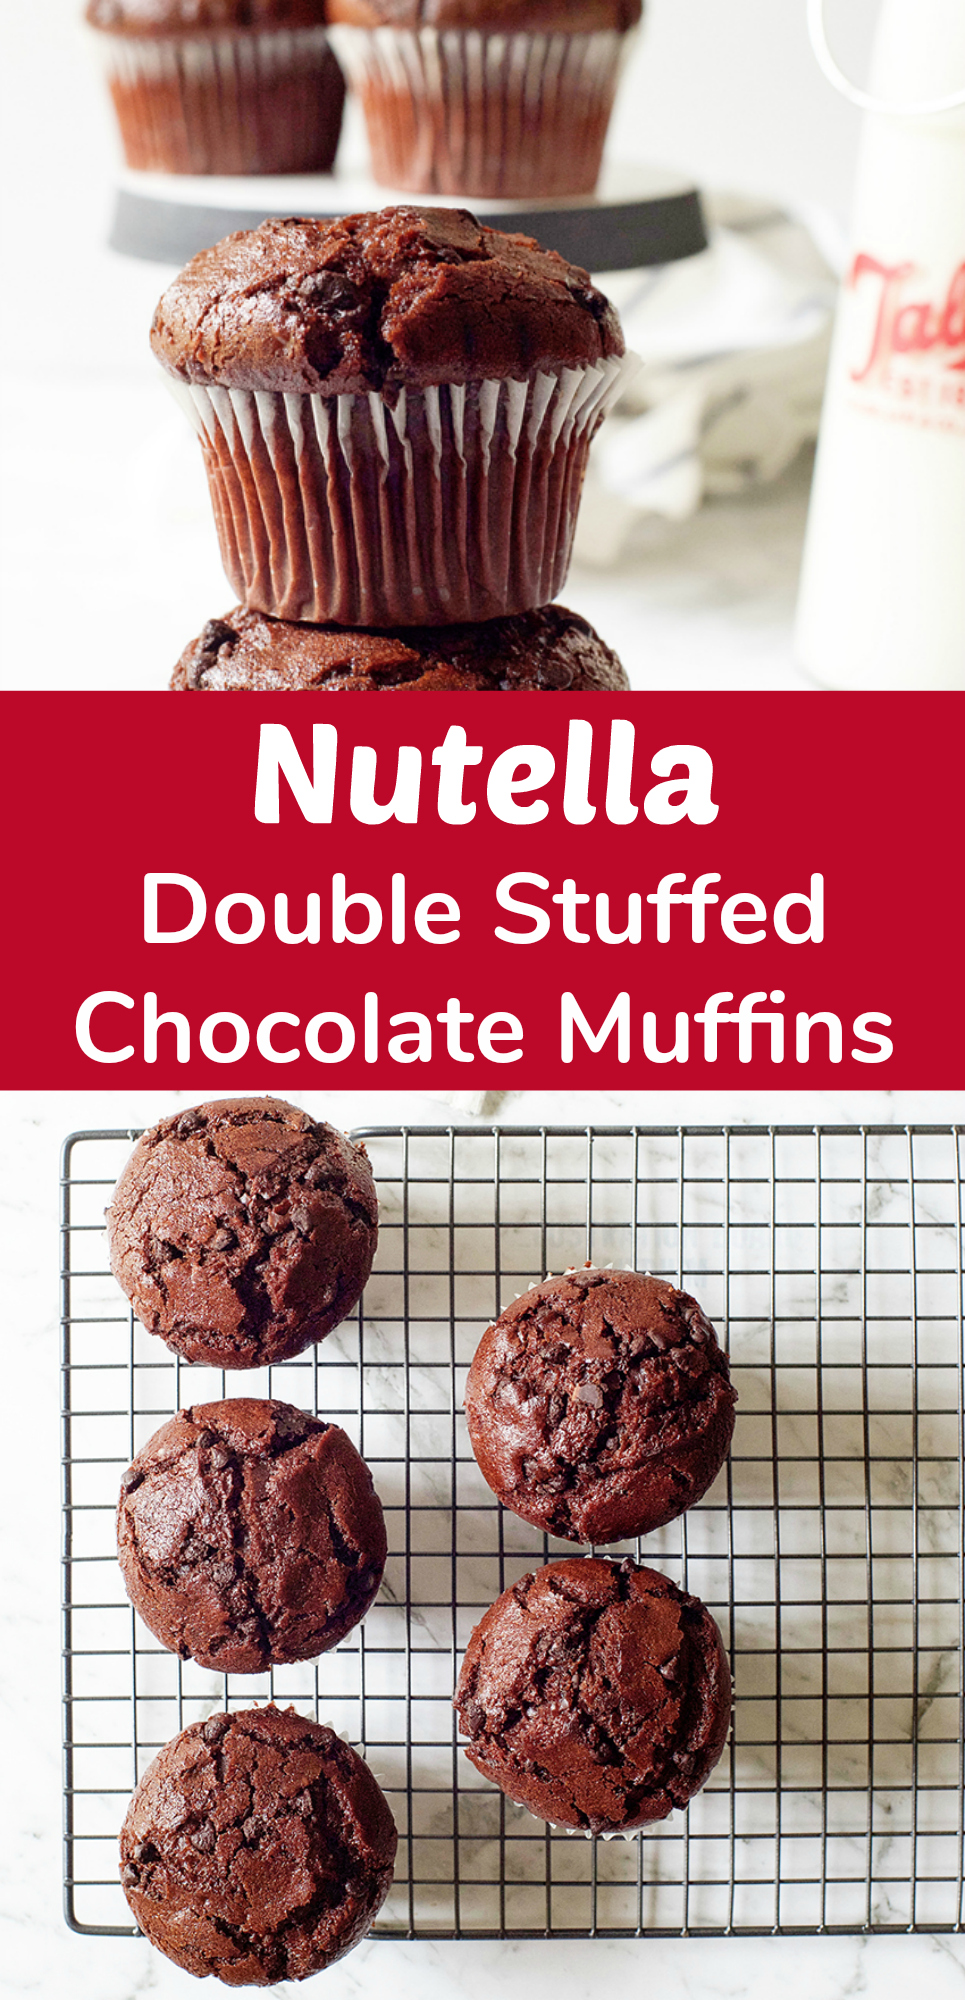 Nutella Stuffed Double Chocolate Muffins Recipe, YUM!